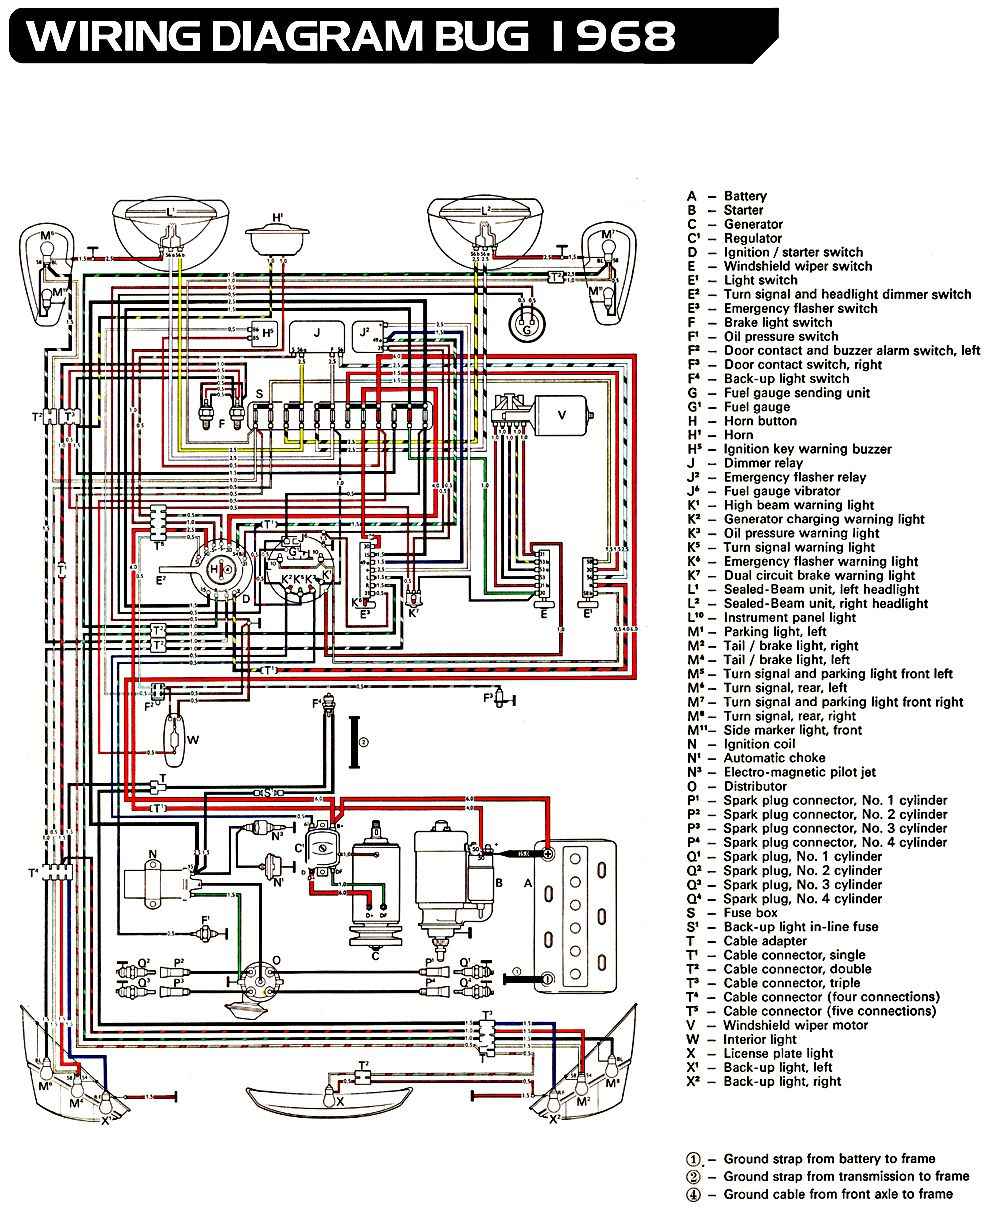 3a1908112d3826270ed5e3be362292bf vw bug ignition wiring diagram 73 vw wiring diagram free